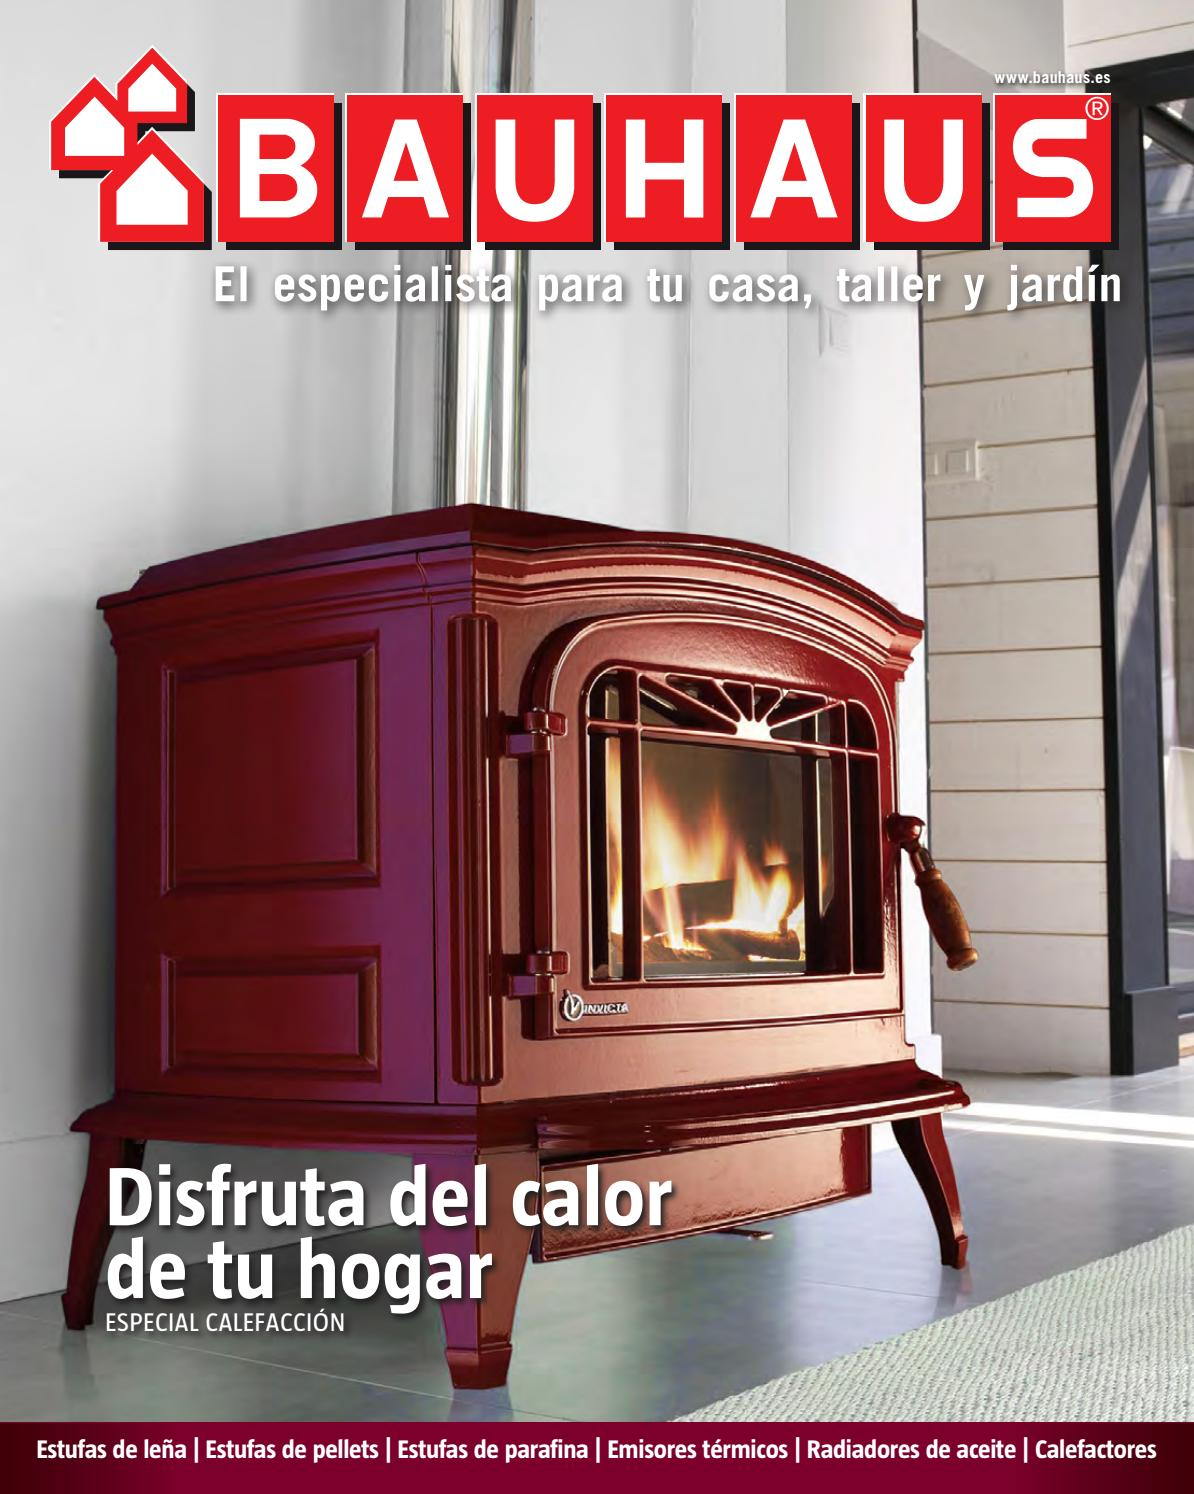 especial calefacci n by bauhaus issuu. Black Bedroom Furniture Sets. Home Design Ideas